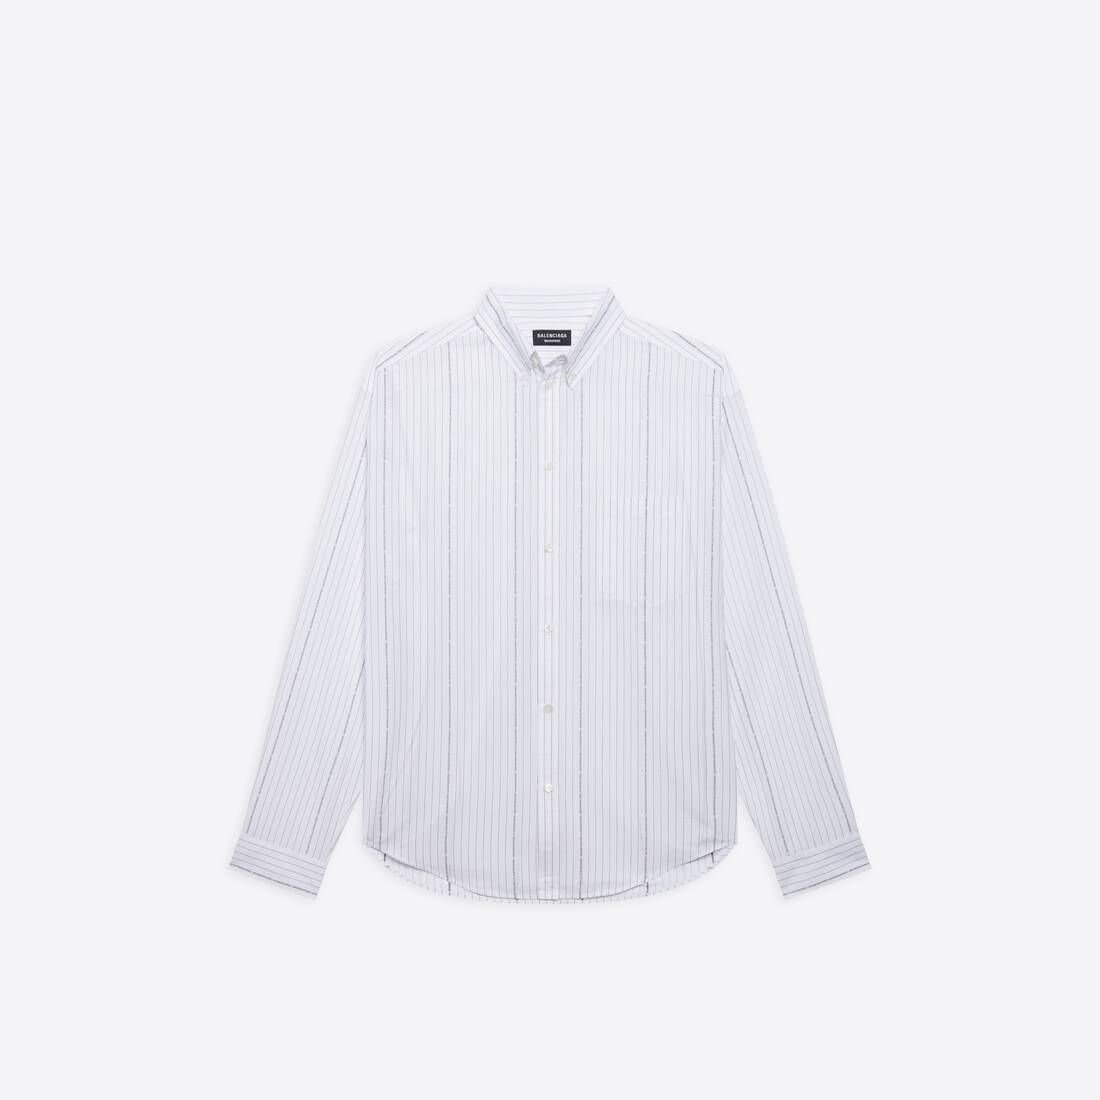 Display zoomed version of large fit shirt  1